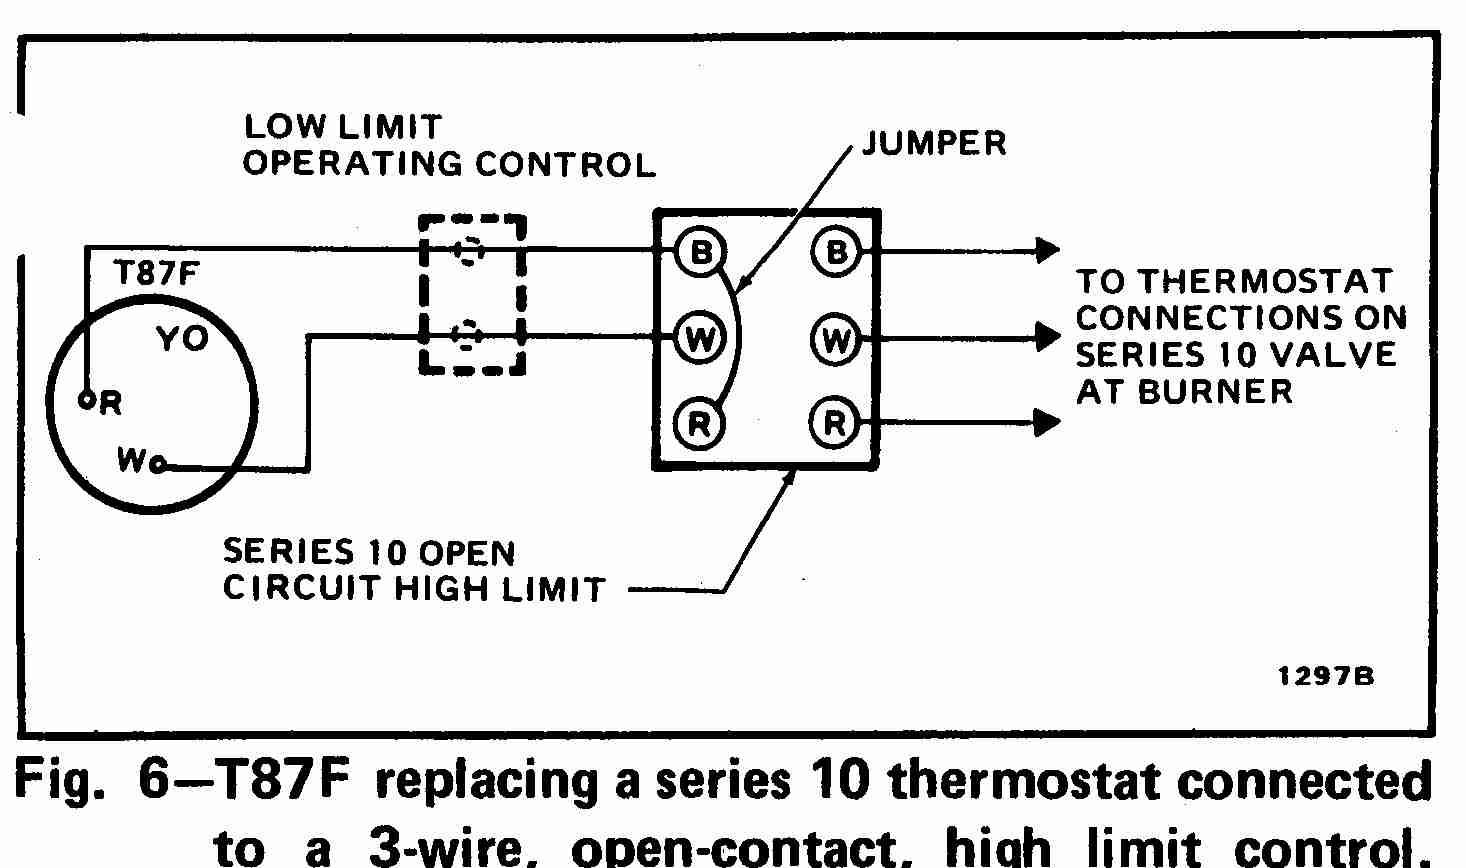 capillary thermostat wiring diagram wiring diagram Camco Thermostat Wiring Diagram capillary thermostat wiring diagram manual e booksroom thermostat wiring diagrams for hvac systems3 wire high limit